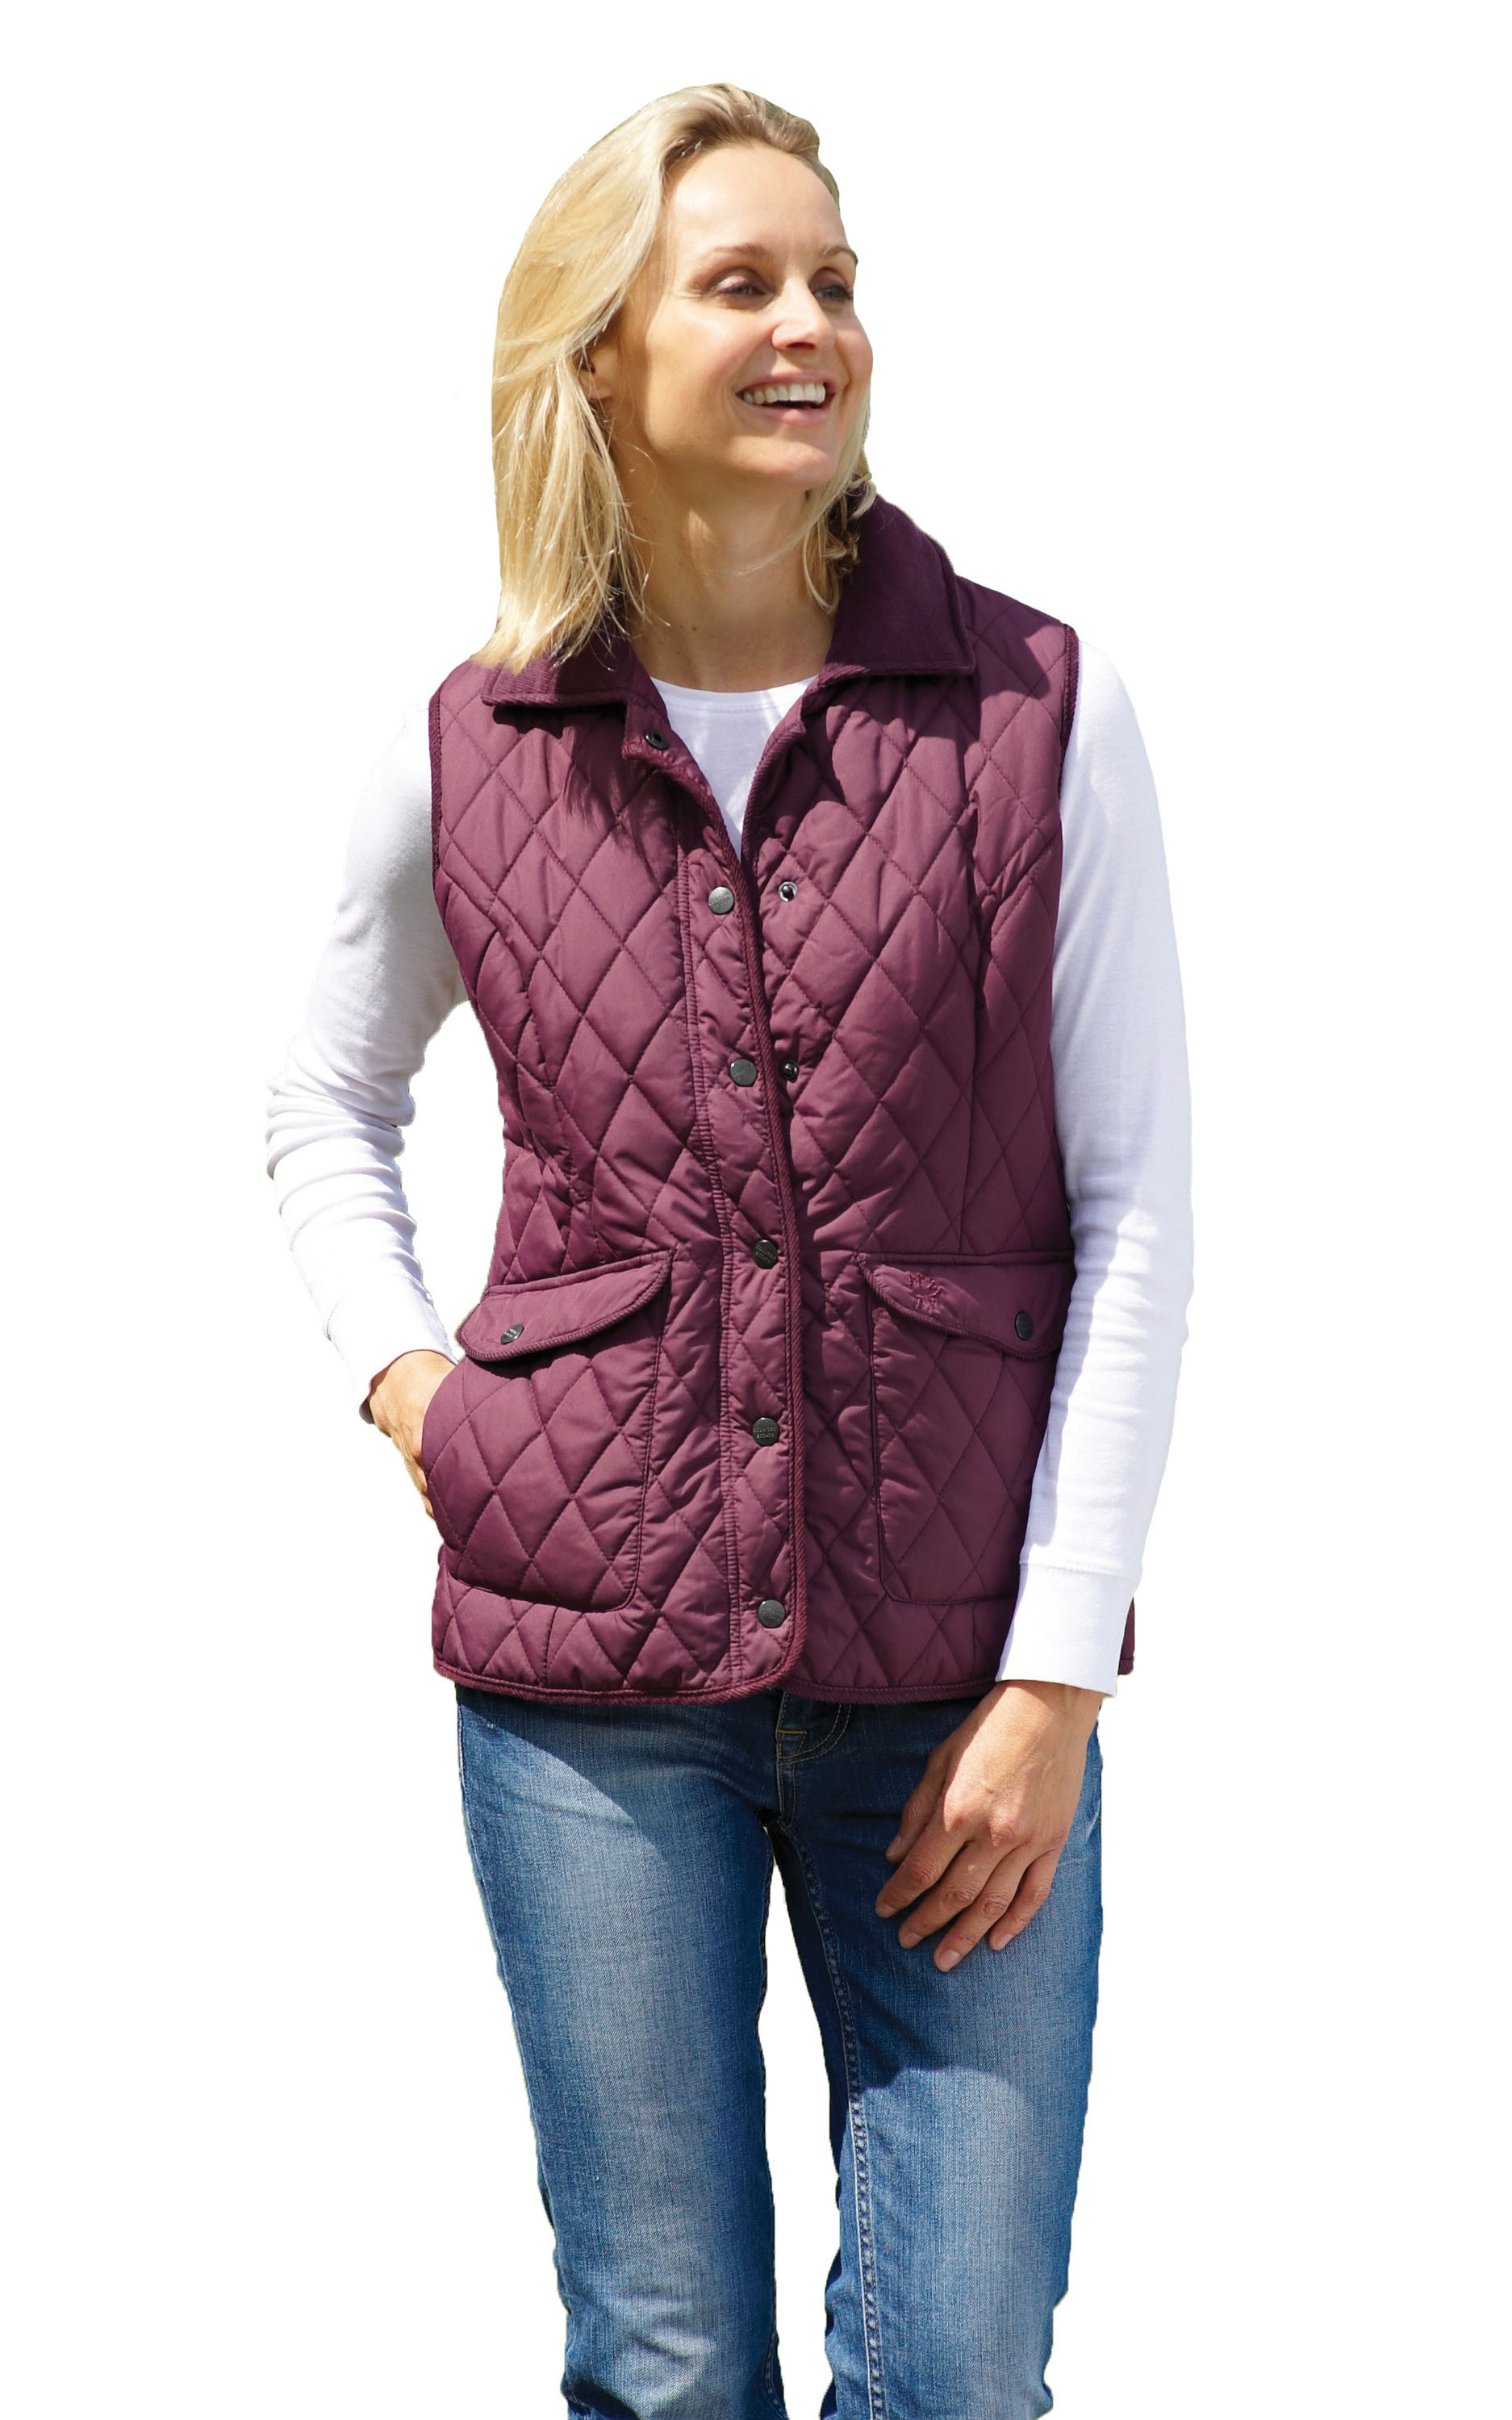 Ladies Champion Country Estate Quilted Gilet Bodywarmer Walking ... : ladies quilted riding jacket - Adamdwight.com